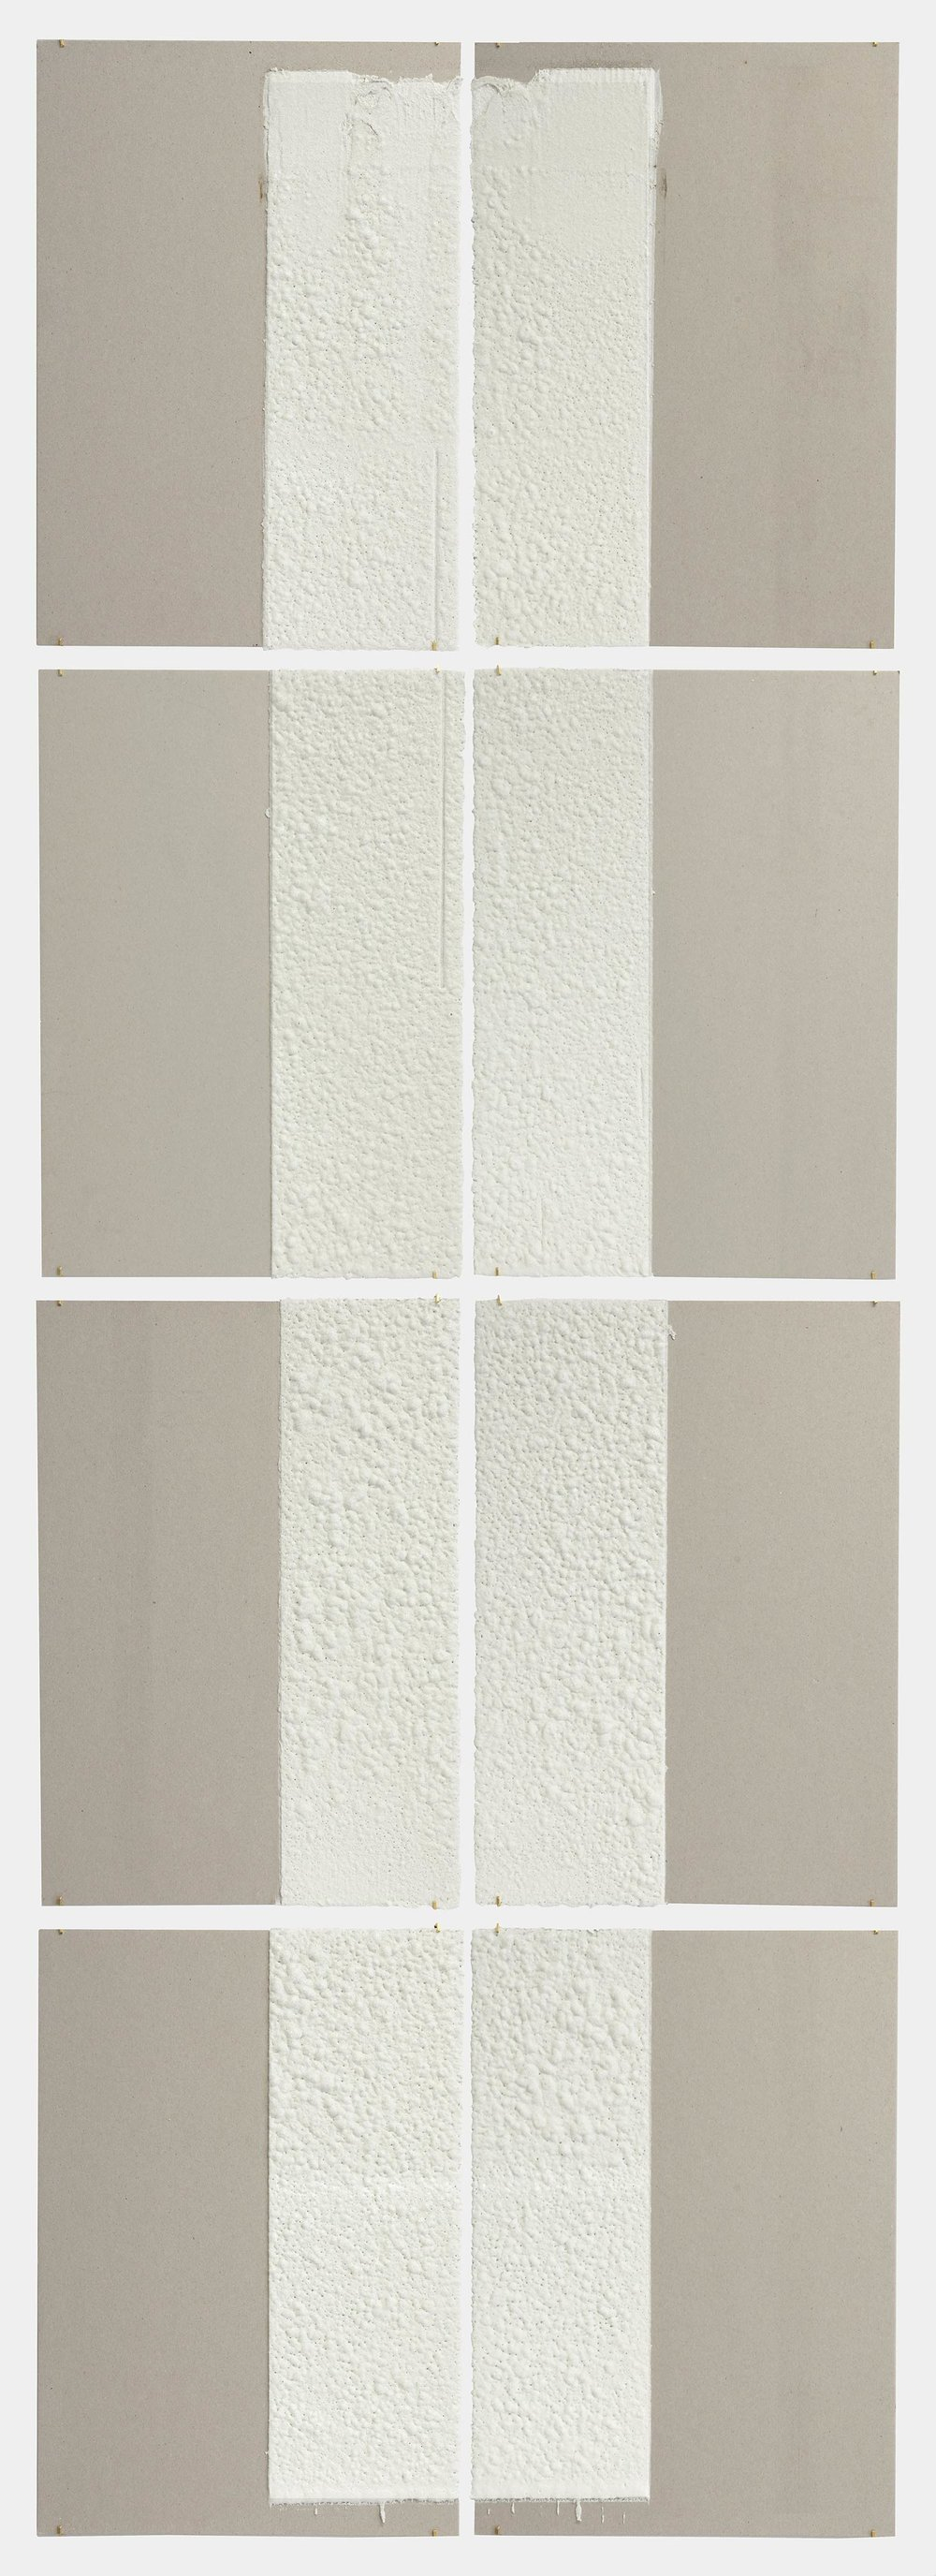 12in (section) (W), 2.27mm (T), White, Crosswalk, Manual marking, Lispenard St, Church St int,  2018  Set of 8 works Thermoplastic paint and reflective glass particles on grey boards 50 x 35 cm each